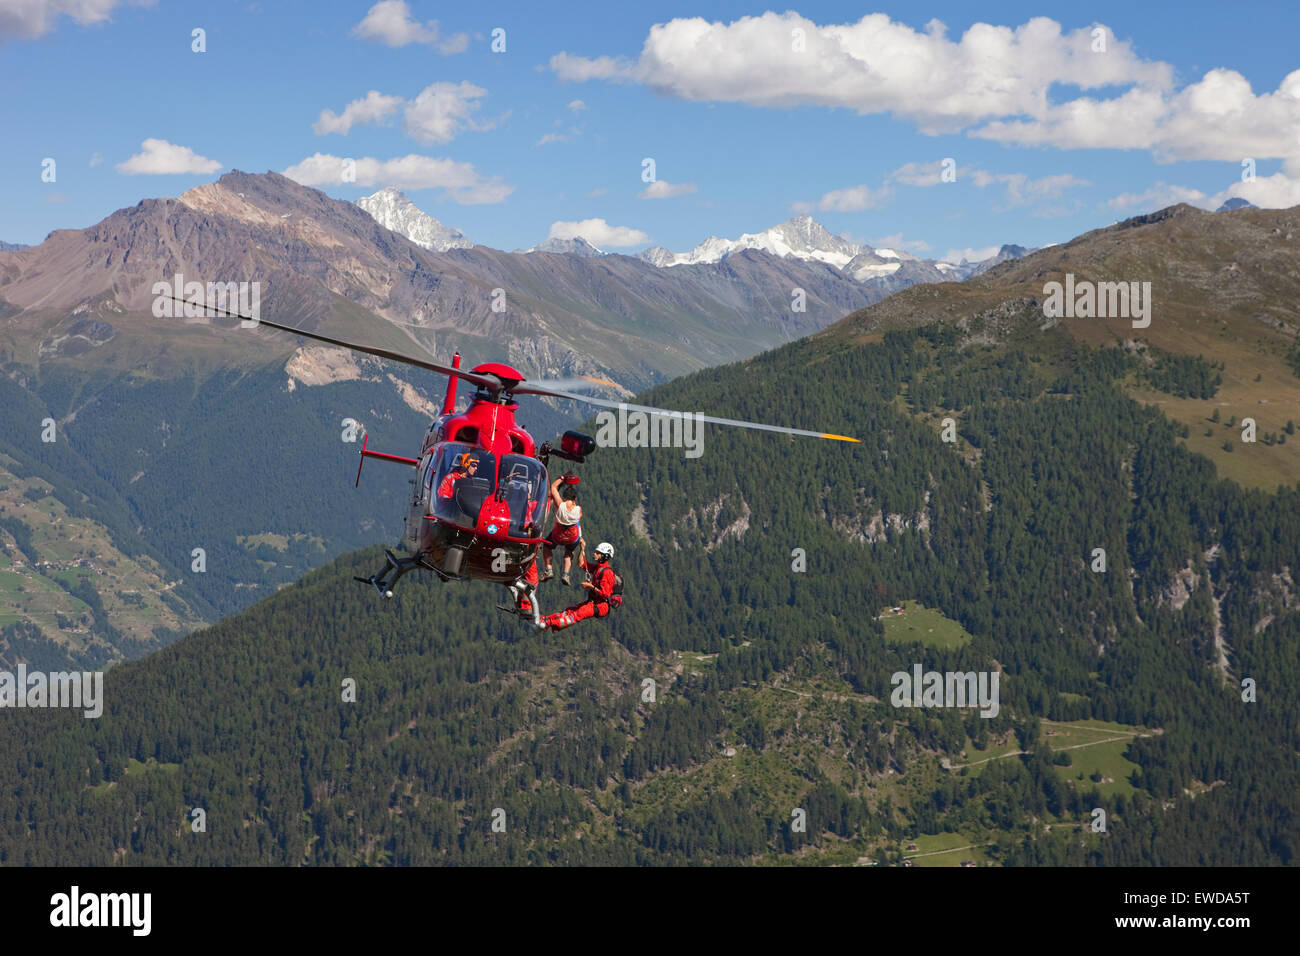 A mountain rescue emergency physician is hanging below a helicopter high above the ground. A injured hiker is being - Stock Image